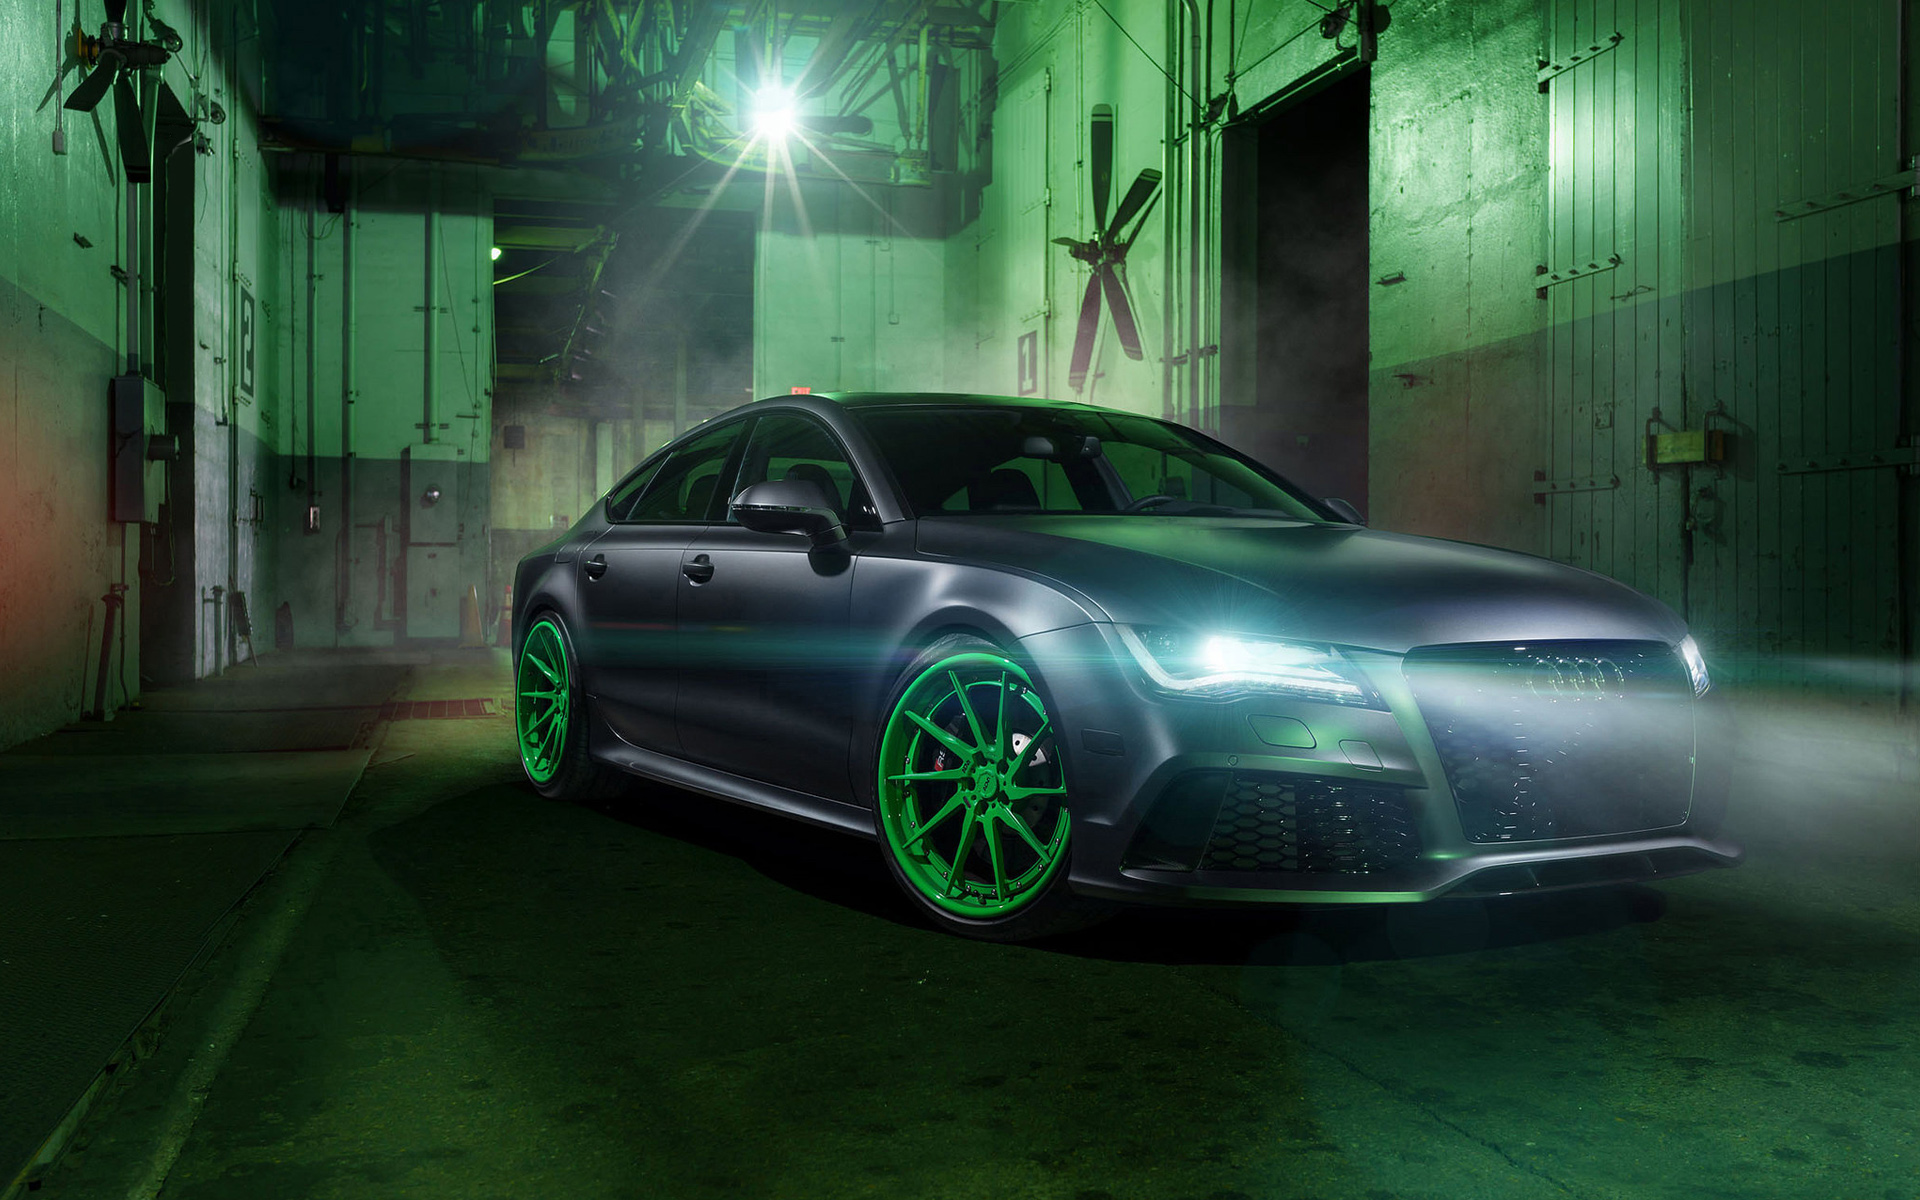 2015 Audi Rs7 Adv10rtscs Wallpaper Hd Car Wallpapers